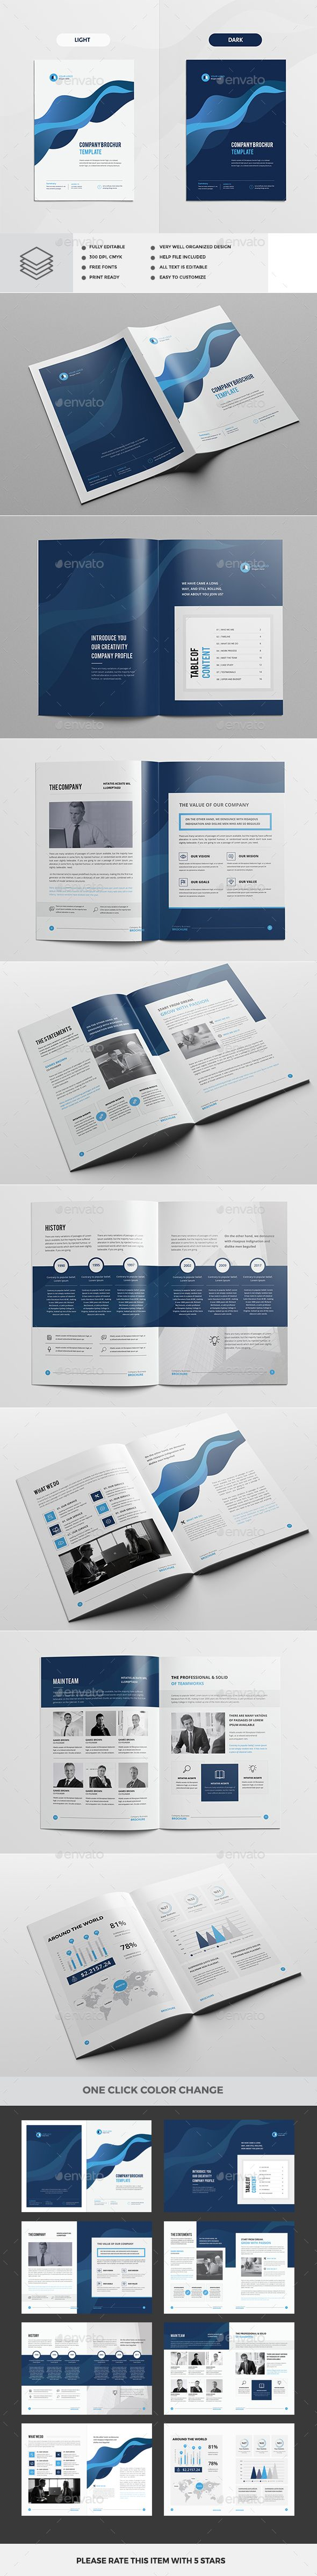 Clean & Modern Multipurpose Brochure Template InDesign INDD